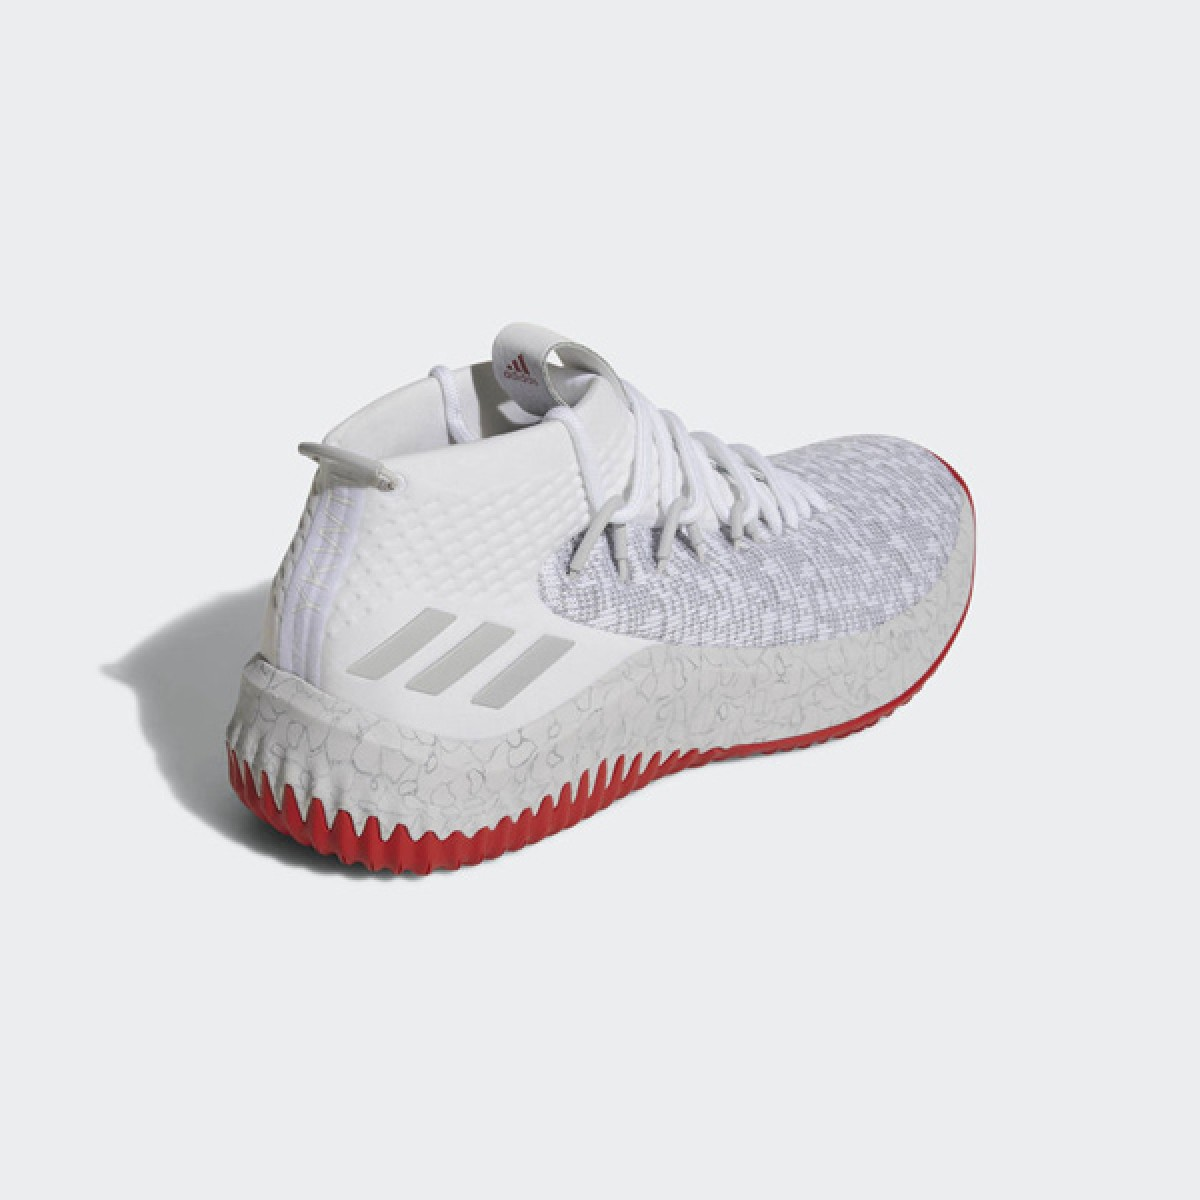 Adidas Dame 4 'Rose City' CQ0471